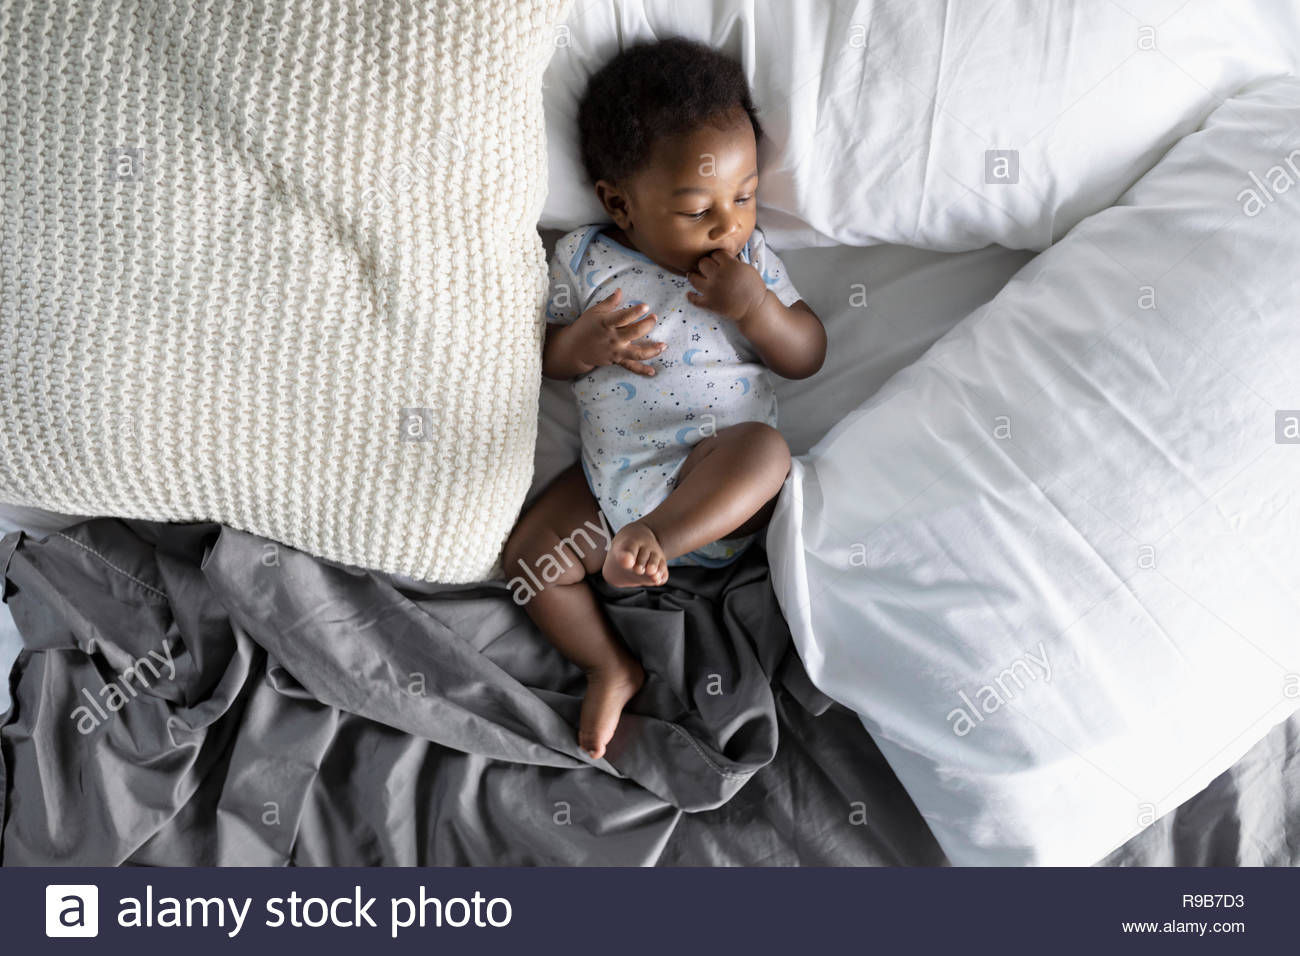 Vue de dessus cute baby boy laying on bed Photo Stock